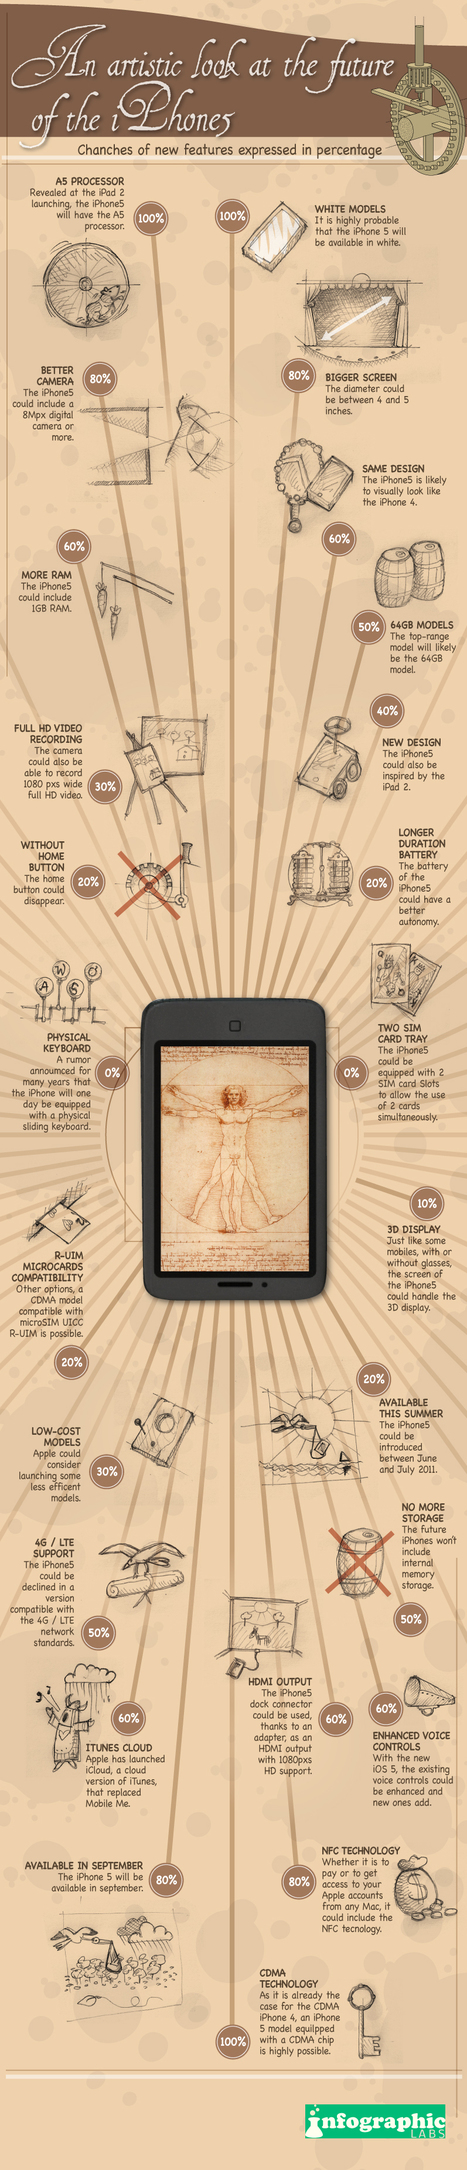 An artistic look at the iPhone 5 rumor | Infographics | Scoop.it